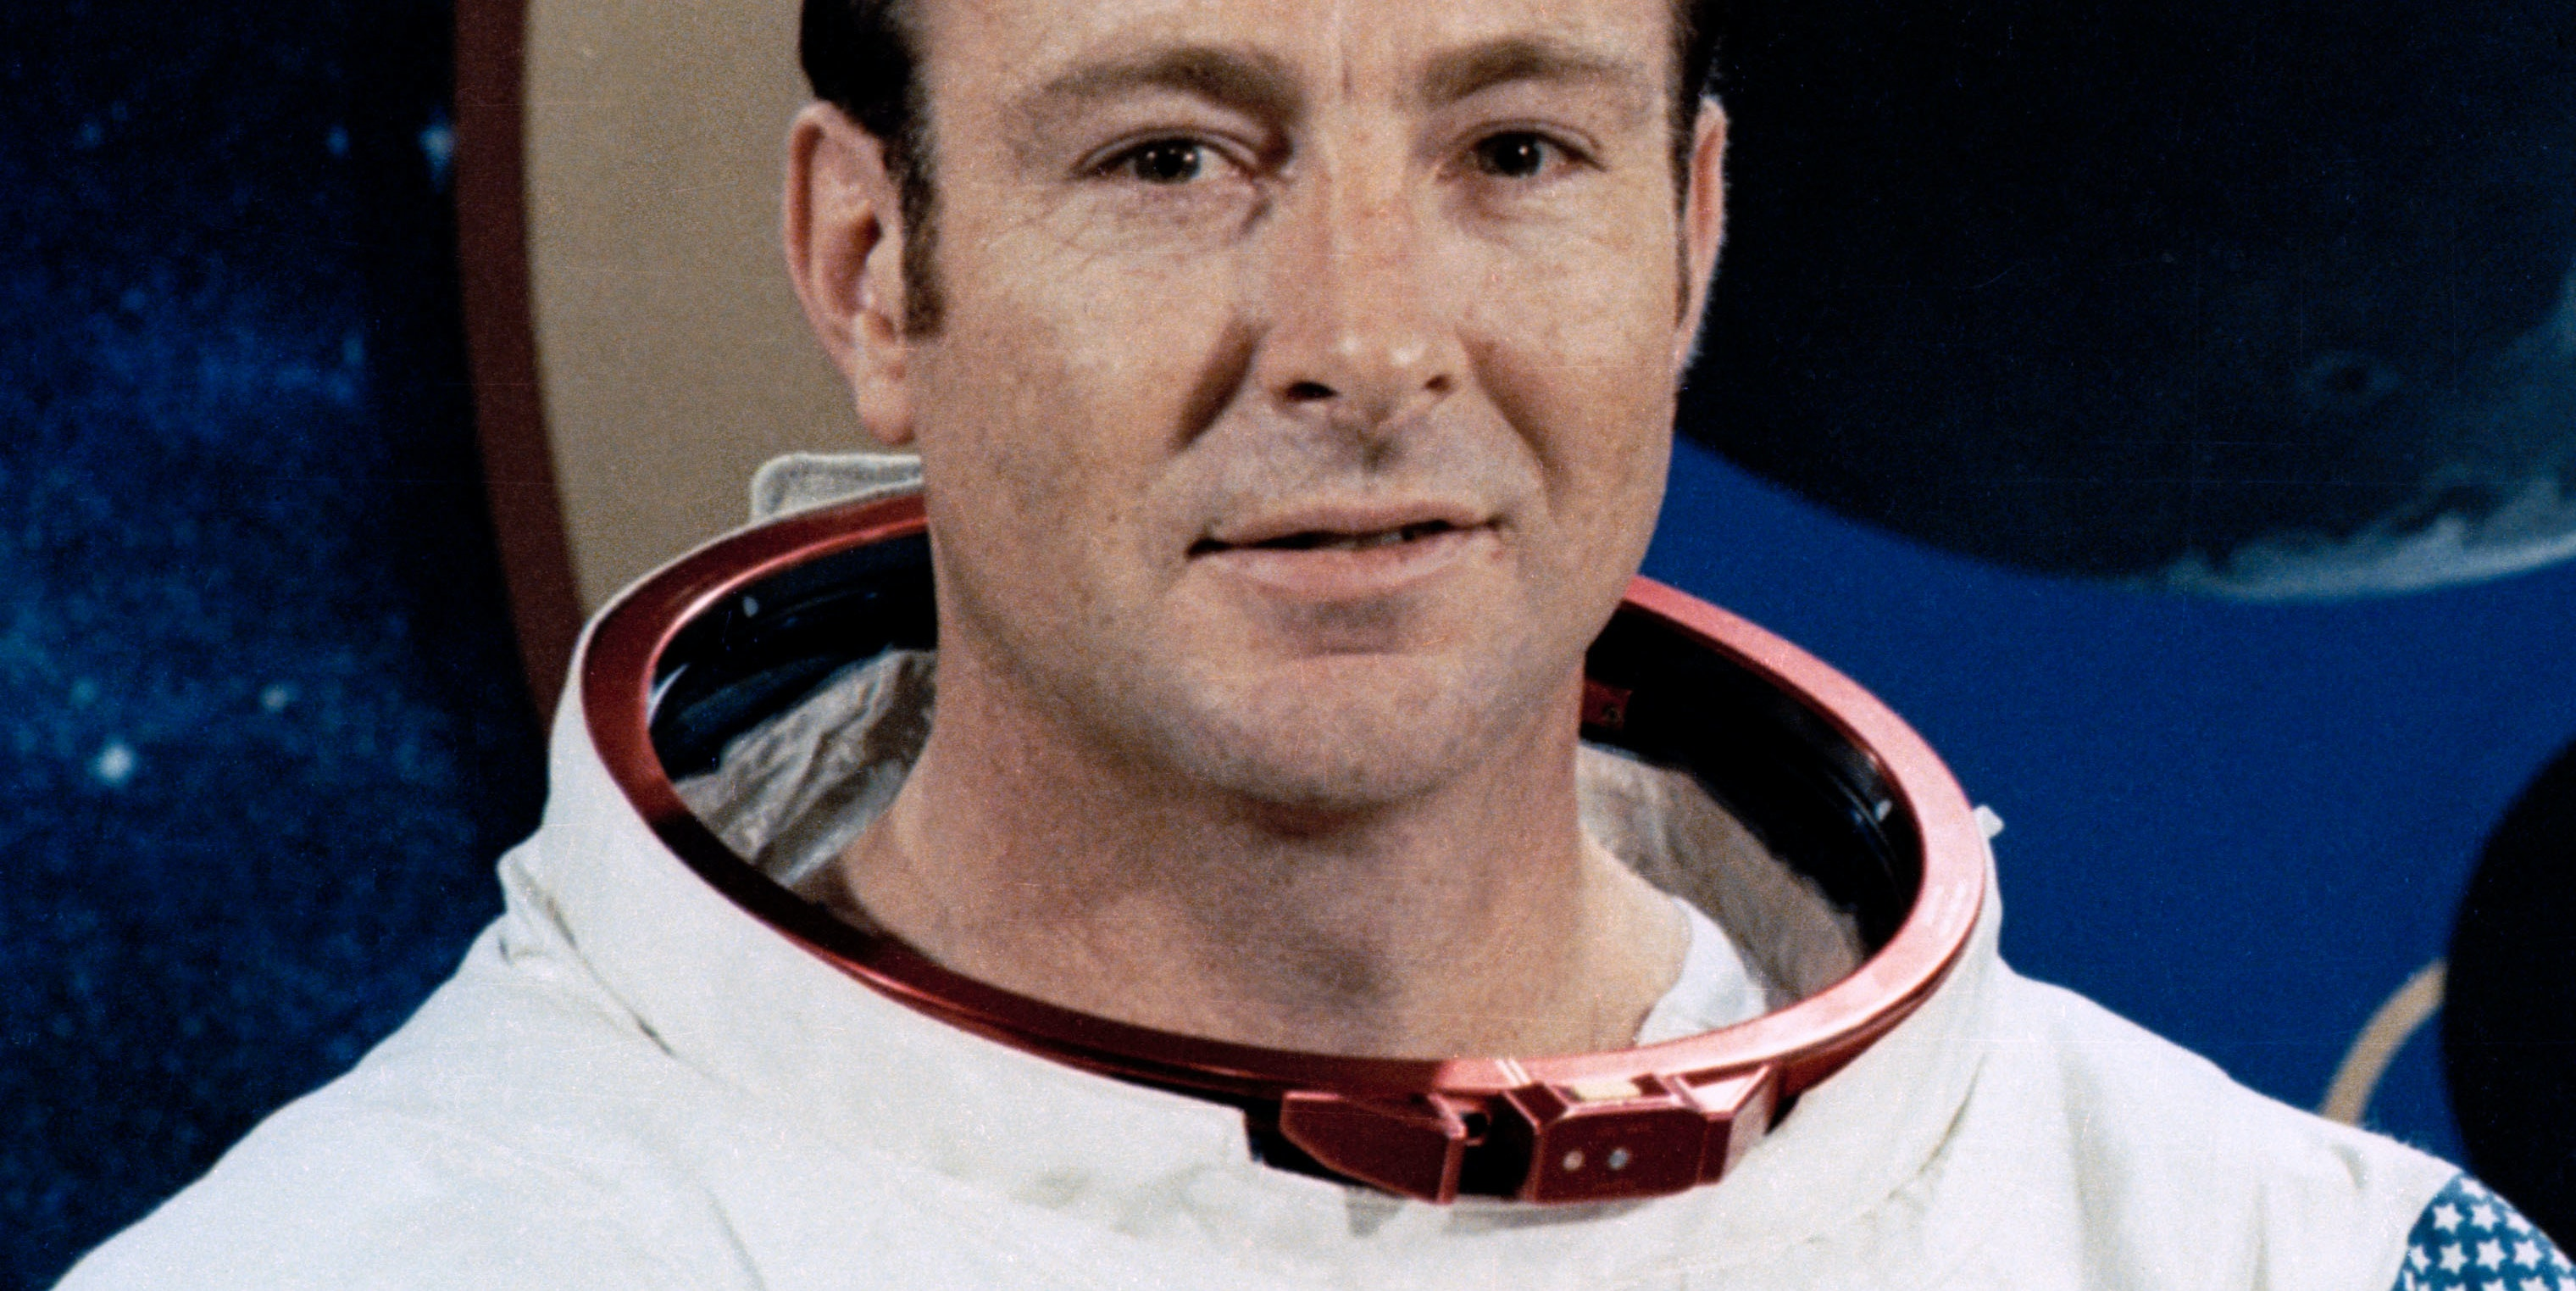 NEW YORK - SEPTEMBER 5:  Astronaut Edgar Mitchell attends the premiere of 'In The Shadow Of The Moon' on September 5, 2007 at the Musuem of Natural History in New York City. (Photo by Steven A. Henry/Getty Images)